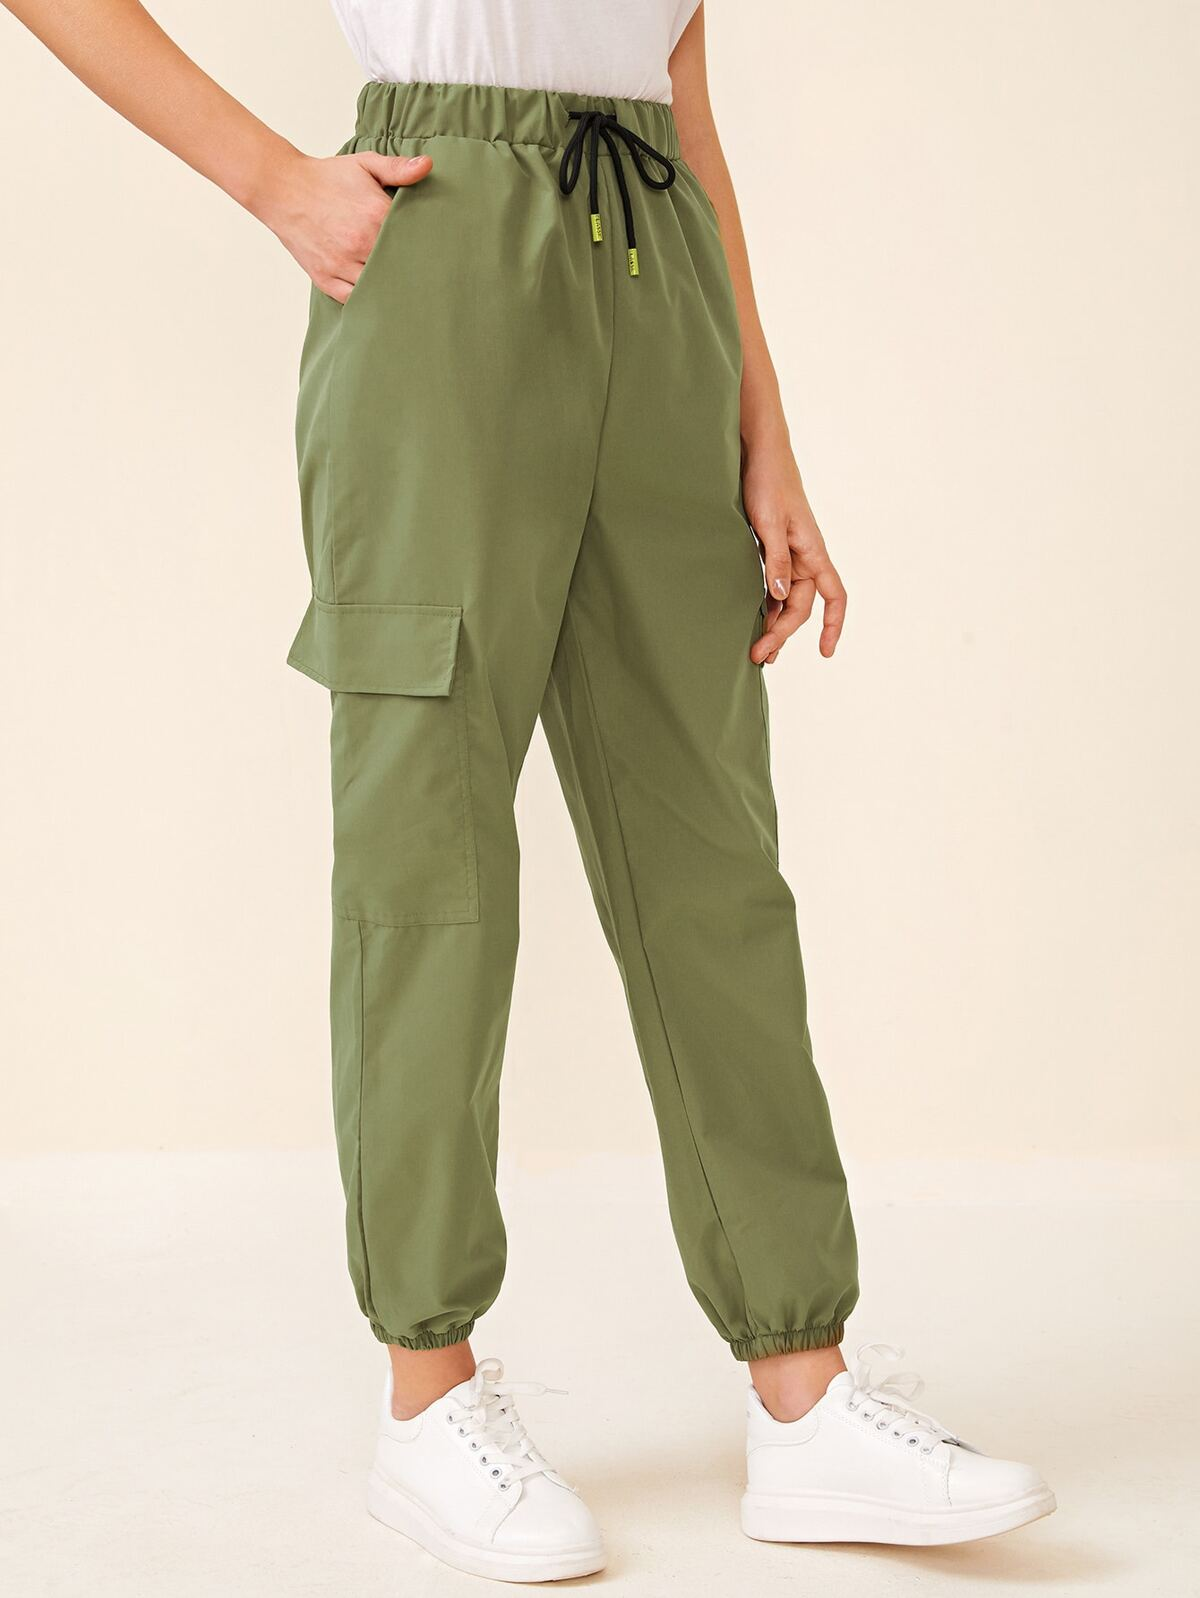 Flap Pockets Drawstring Waist Cargo Pants